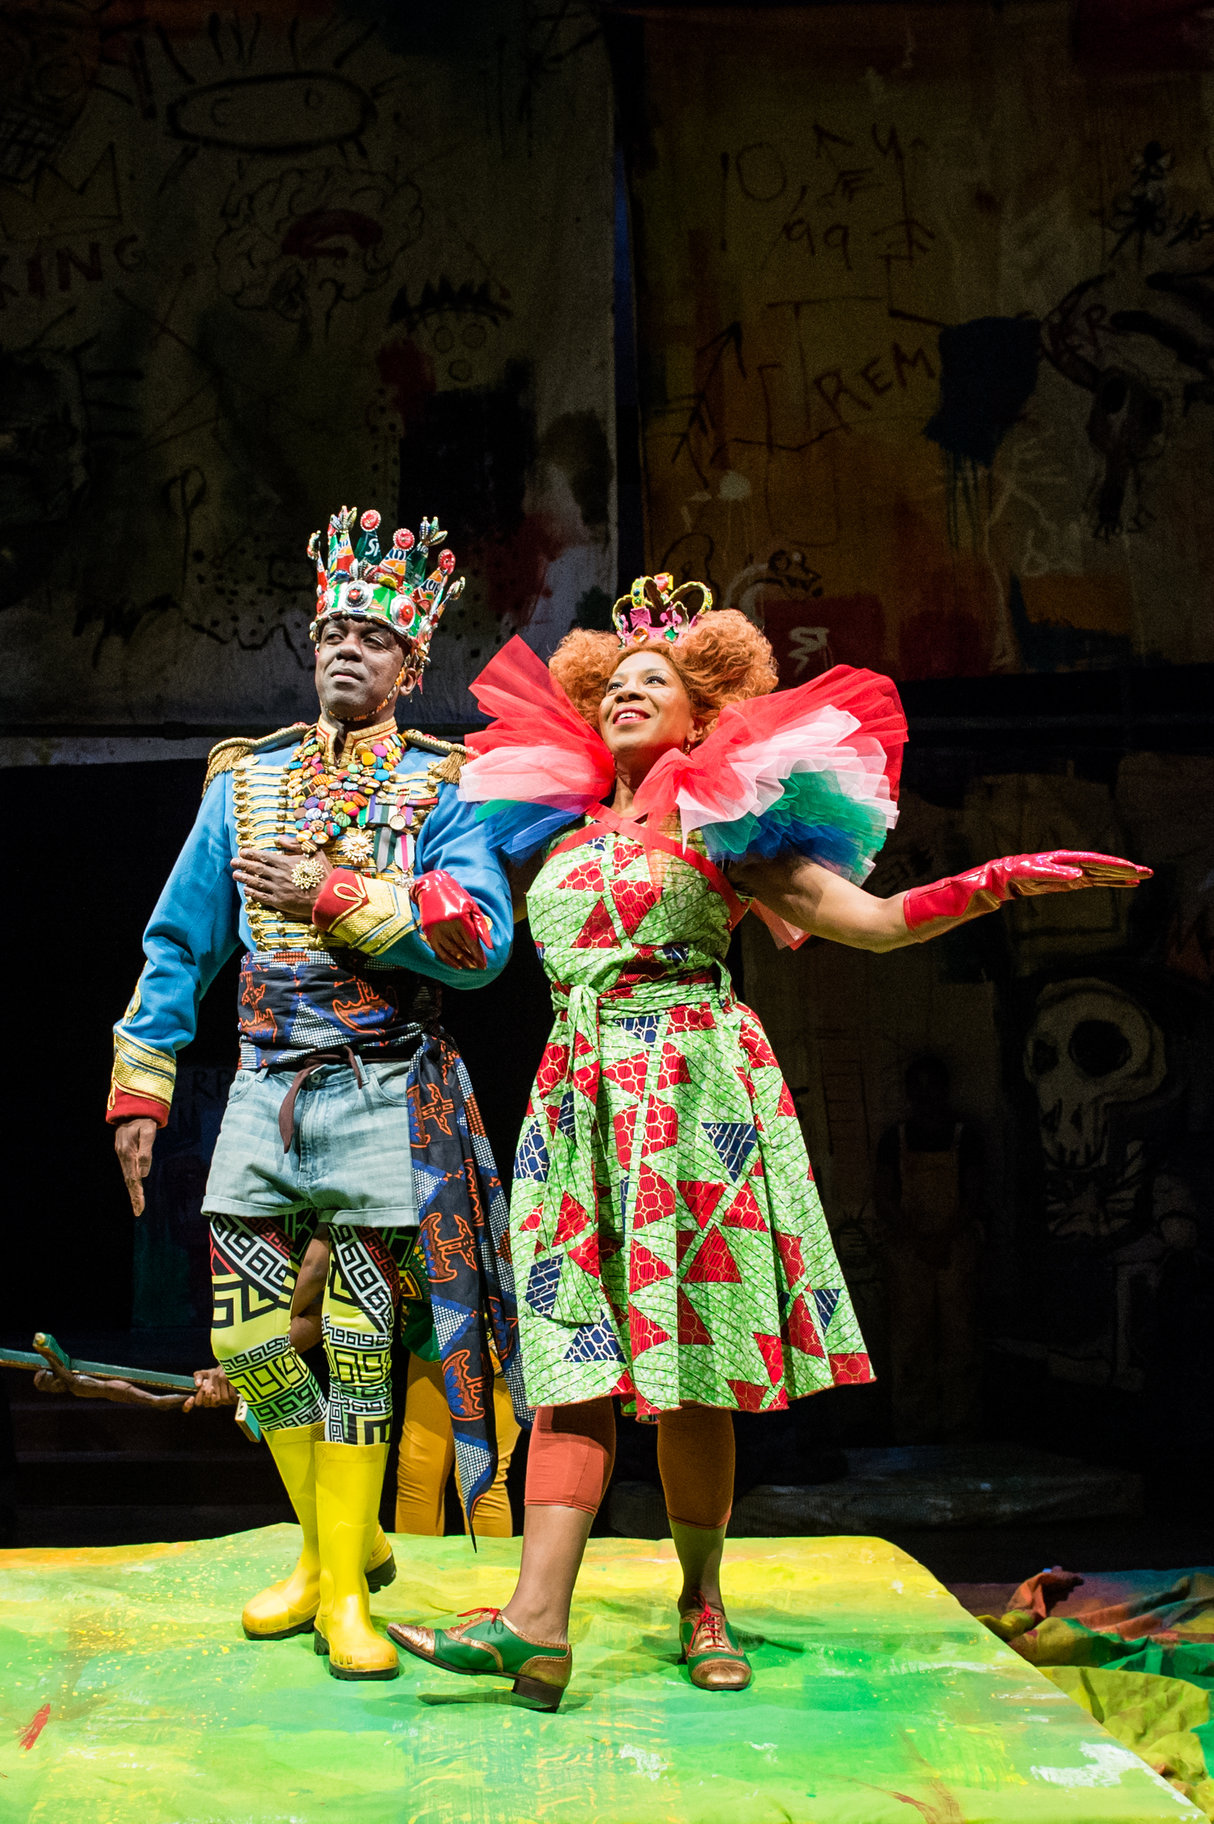 The Player King and Queen in vibrant multicoloured costumes.